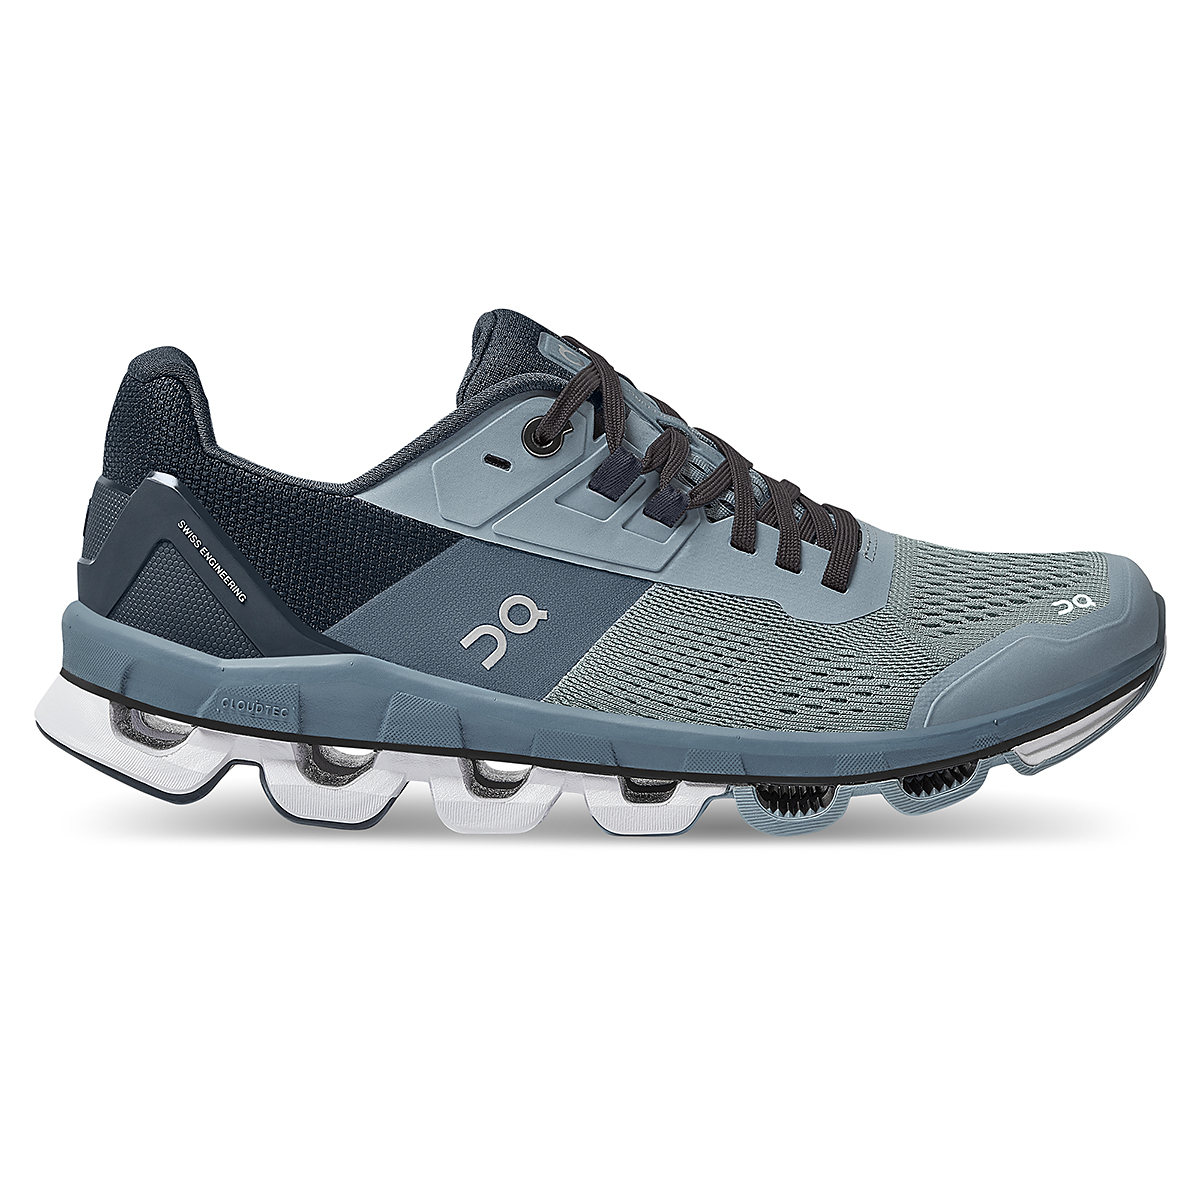 Women's On Cloudace Running Shoe - Color: Wash   Navy - Size: 6.5 - Width: Regular, Wash   Navy, large, image 1